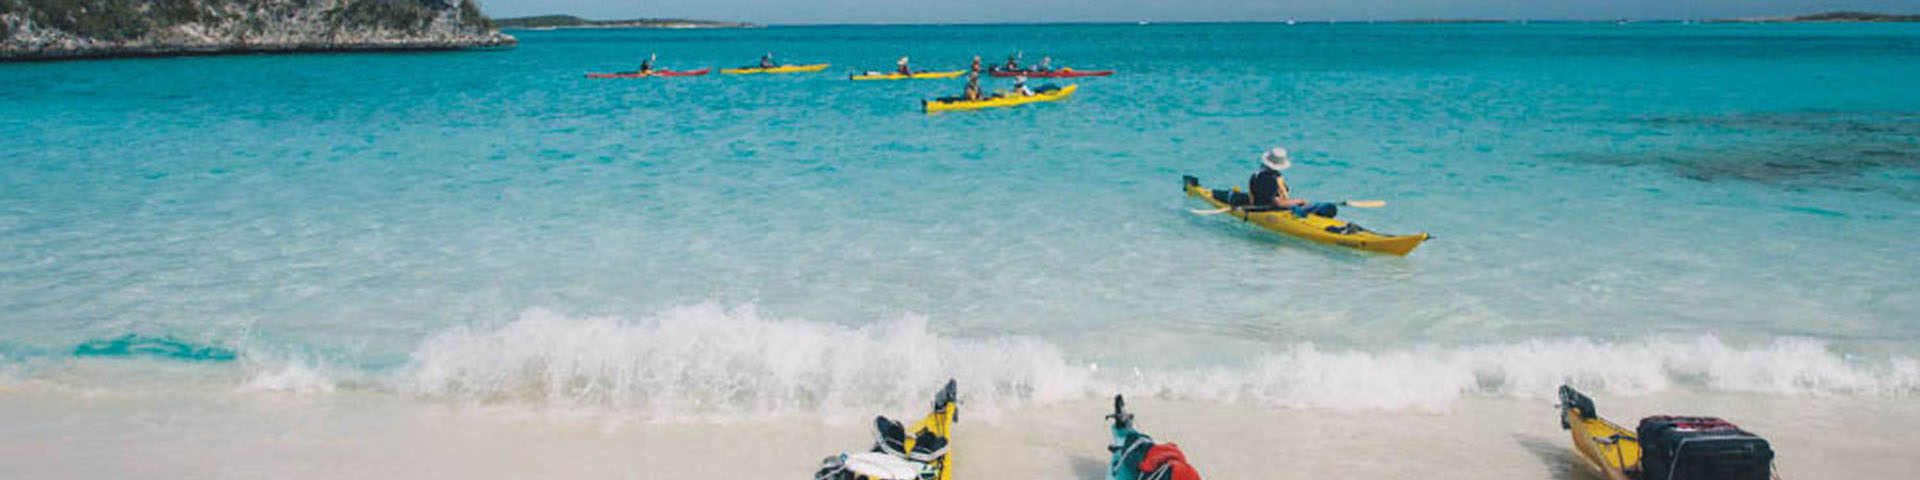 Bahamas Southern Exuma Cays by Spirit of the West Adventures - Image 69